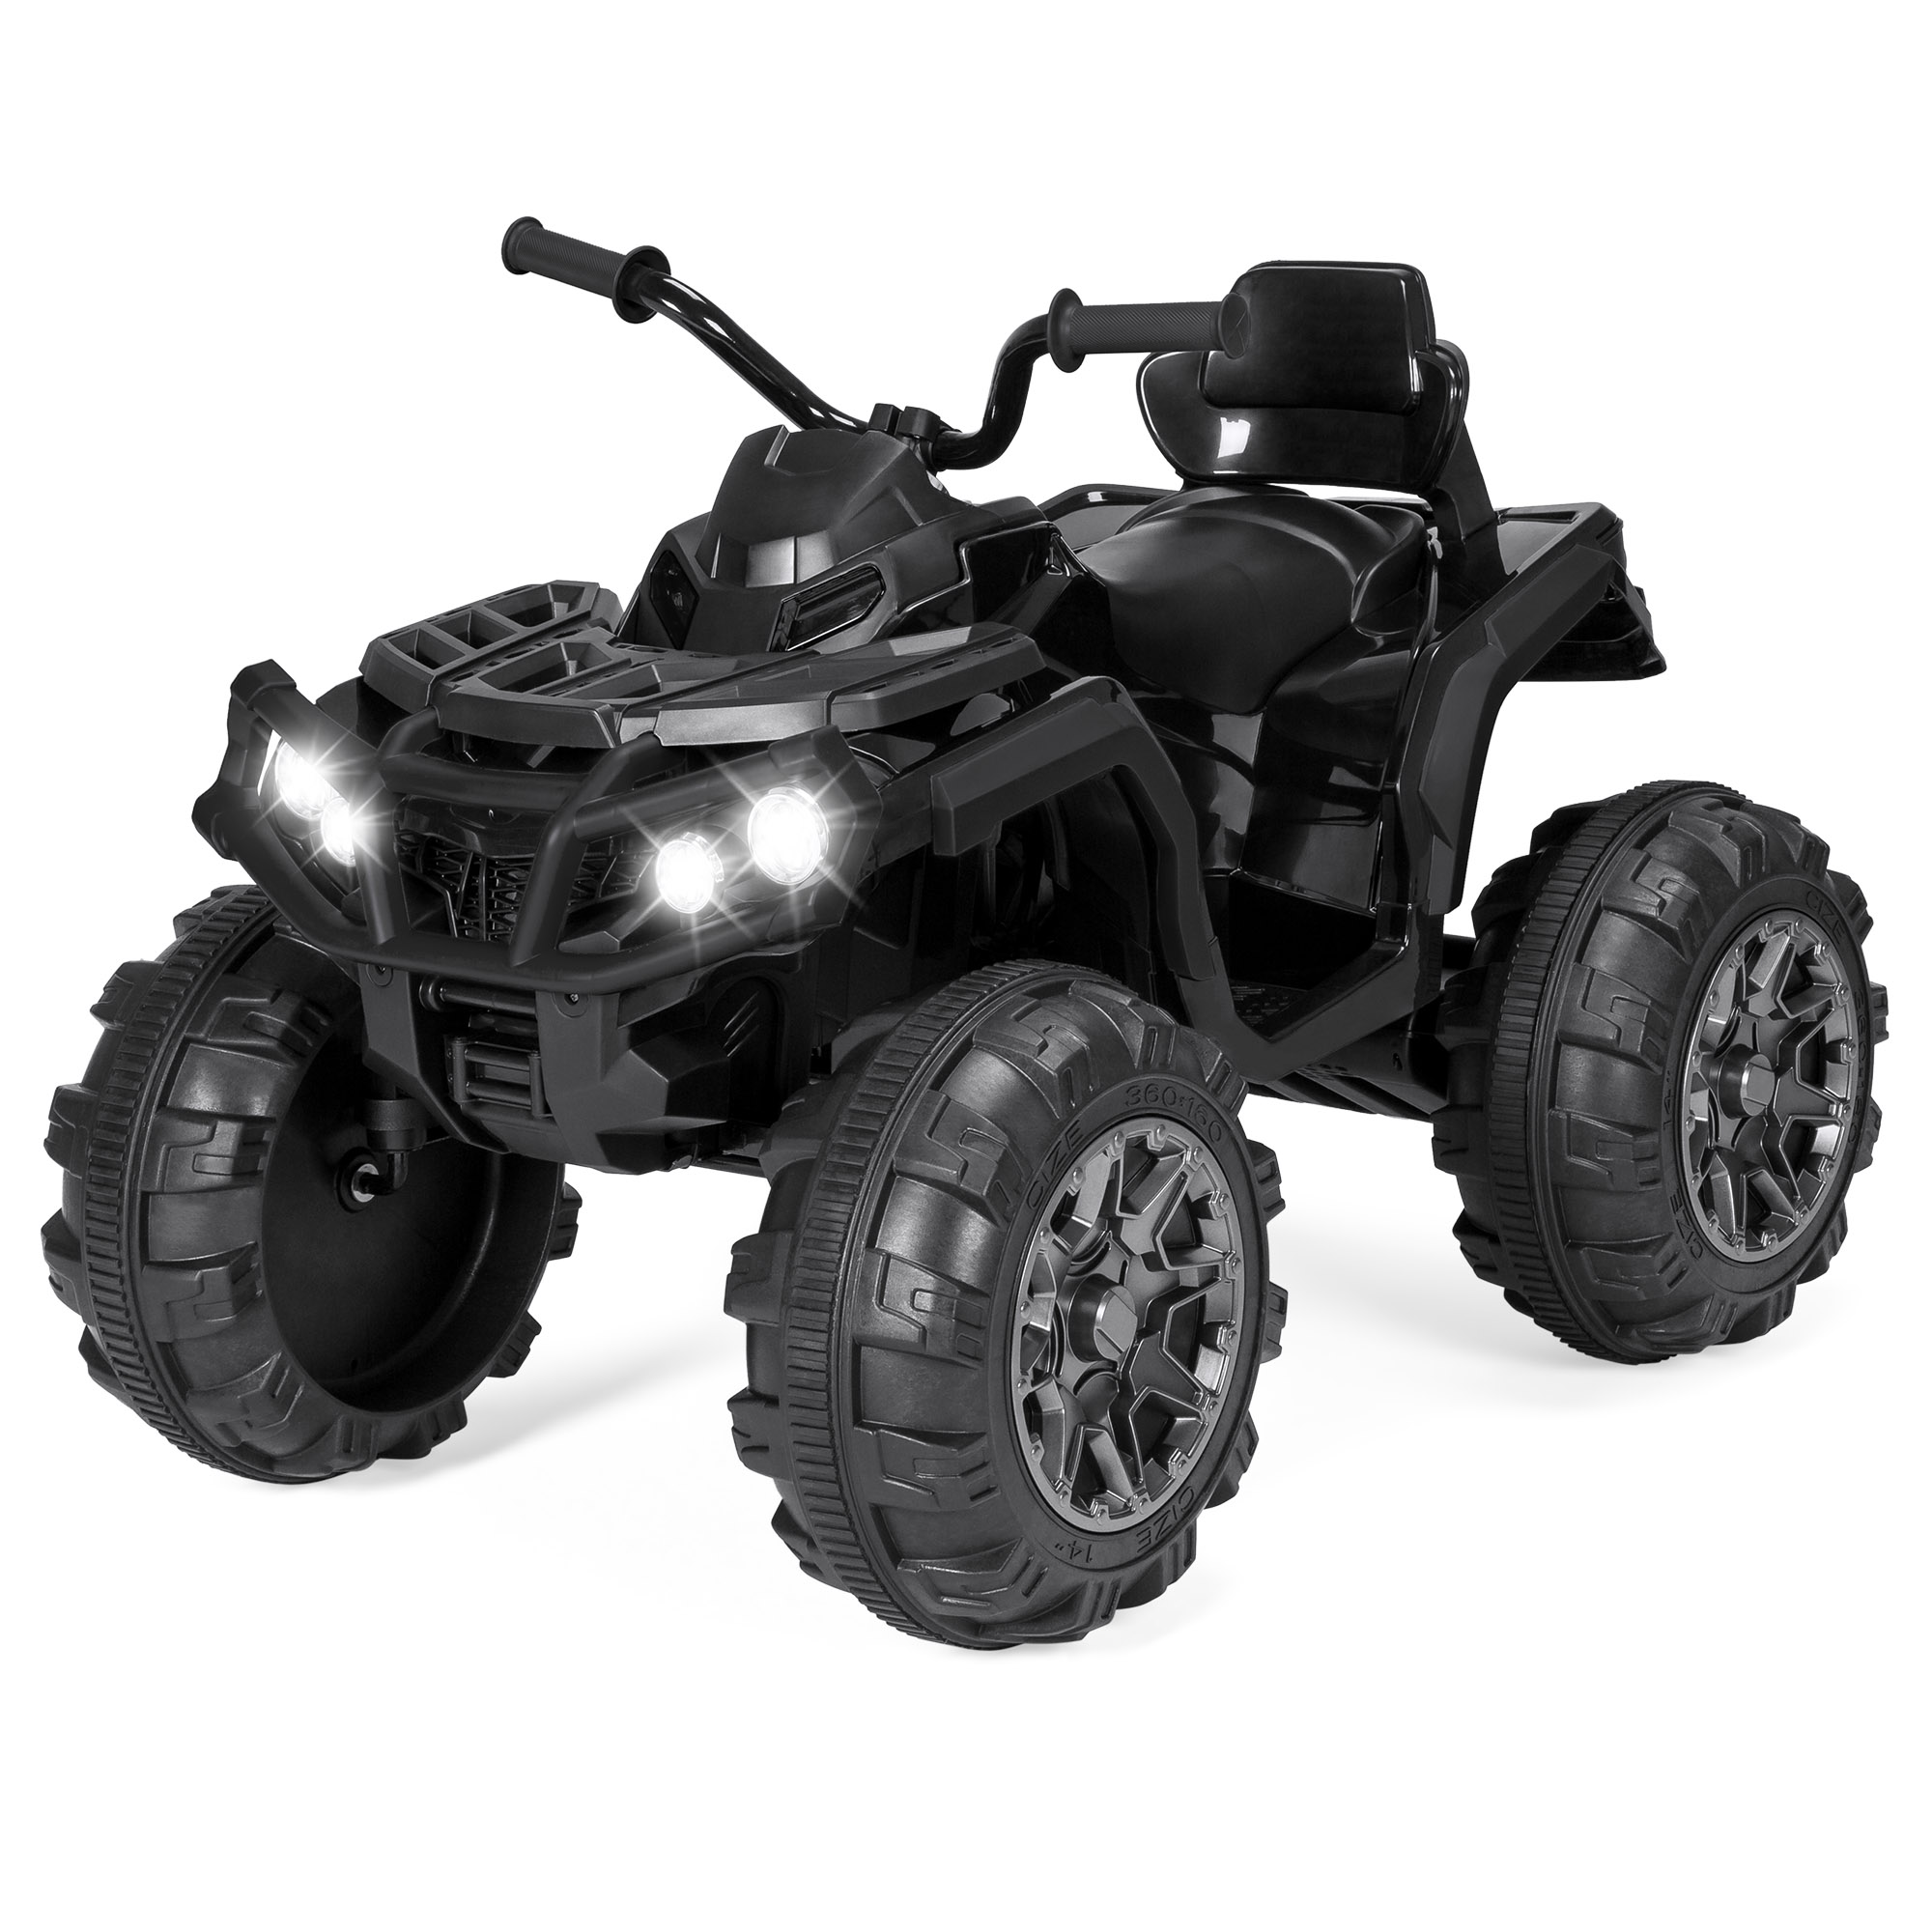 12v Led Quad Details About Kids Atv Quad 4 Wheeler Ride On Vehicle 12v Battery Powered Led Lights Black